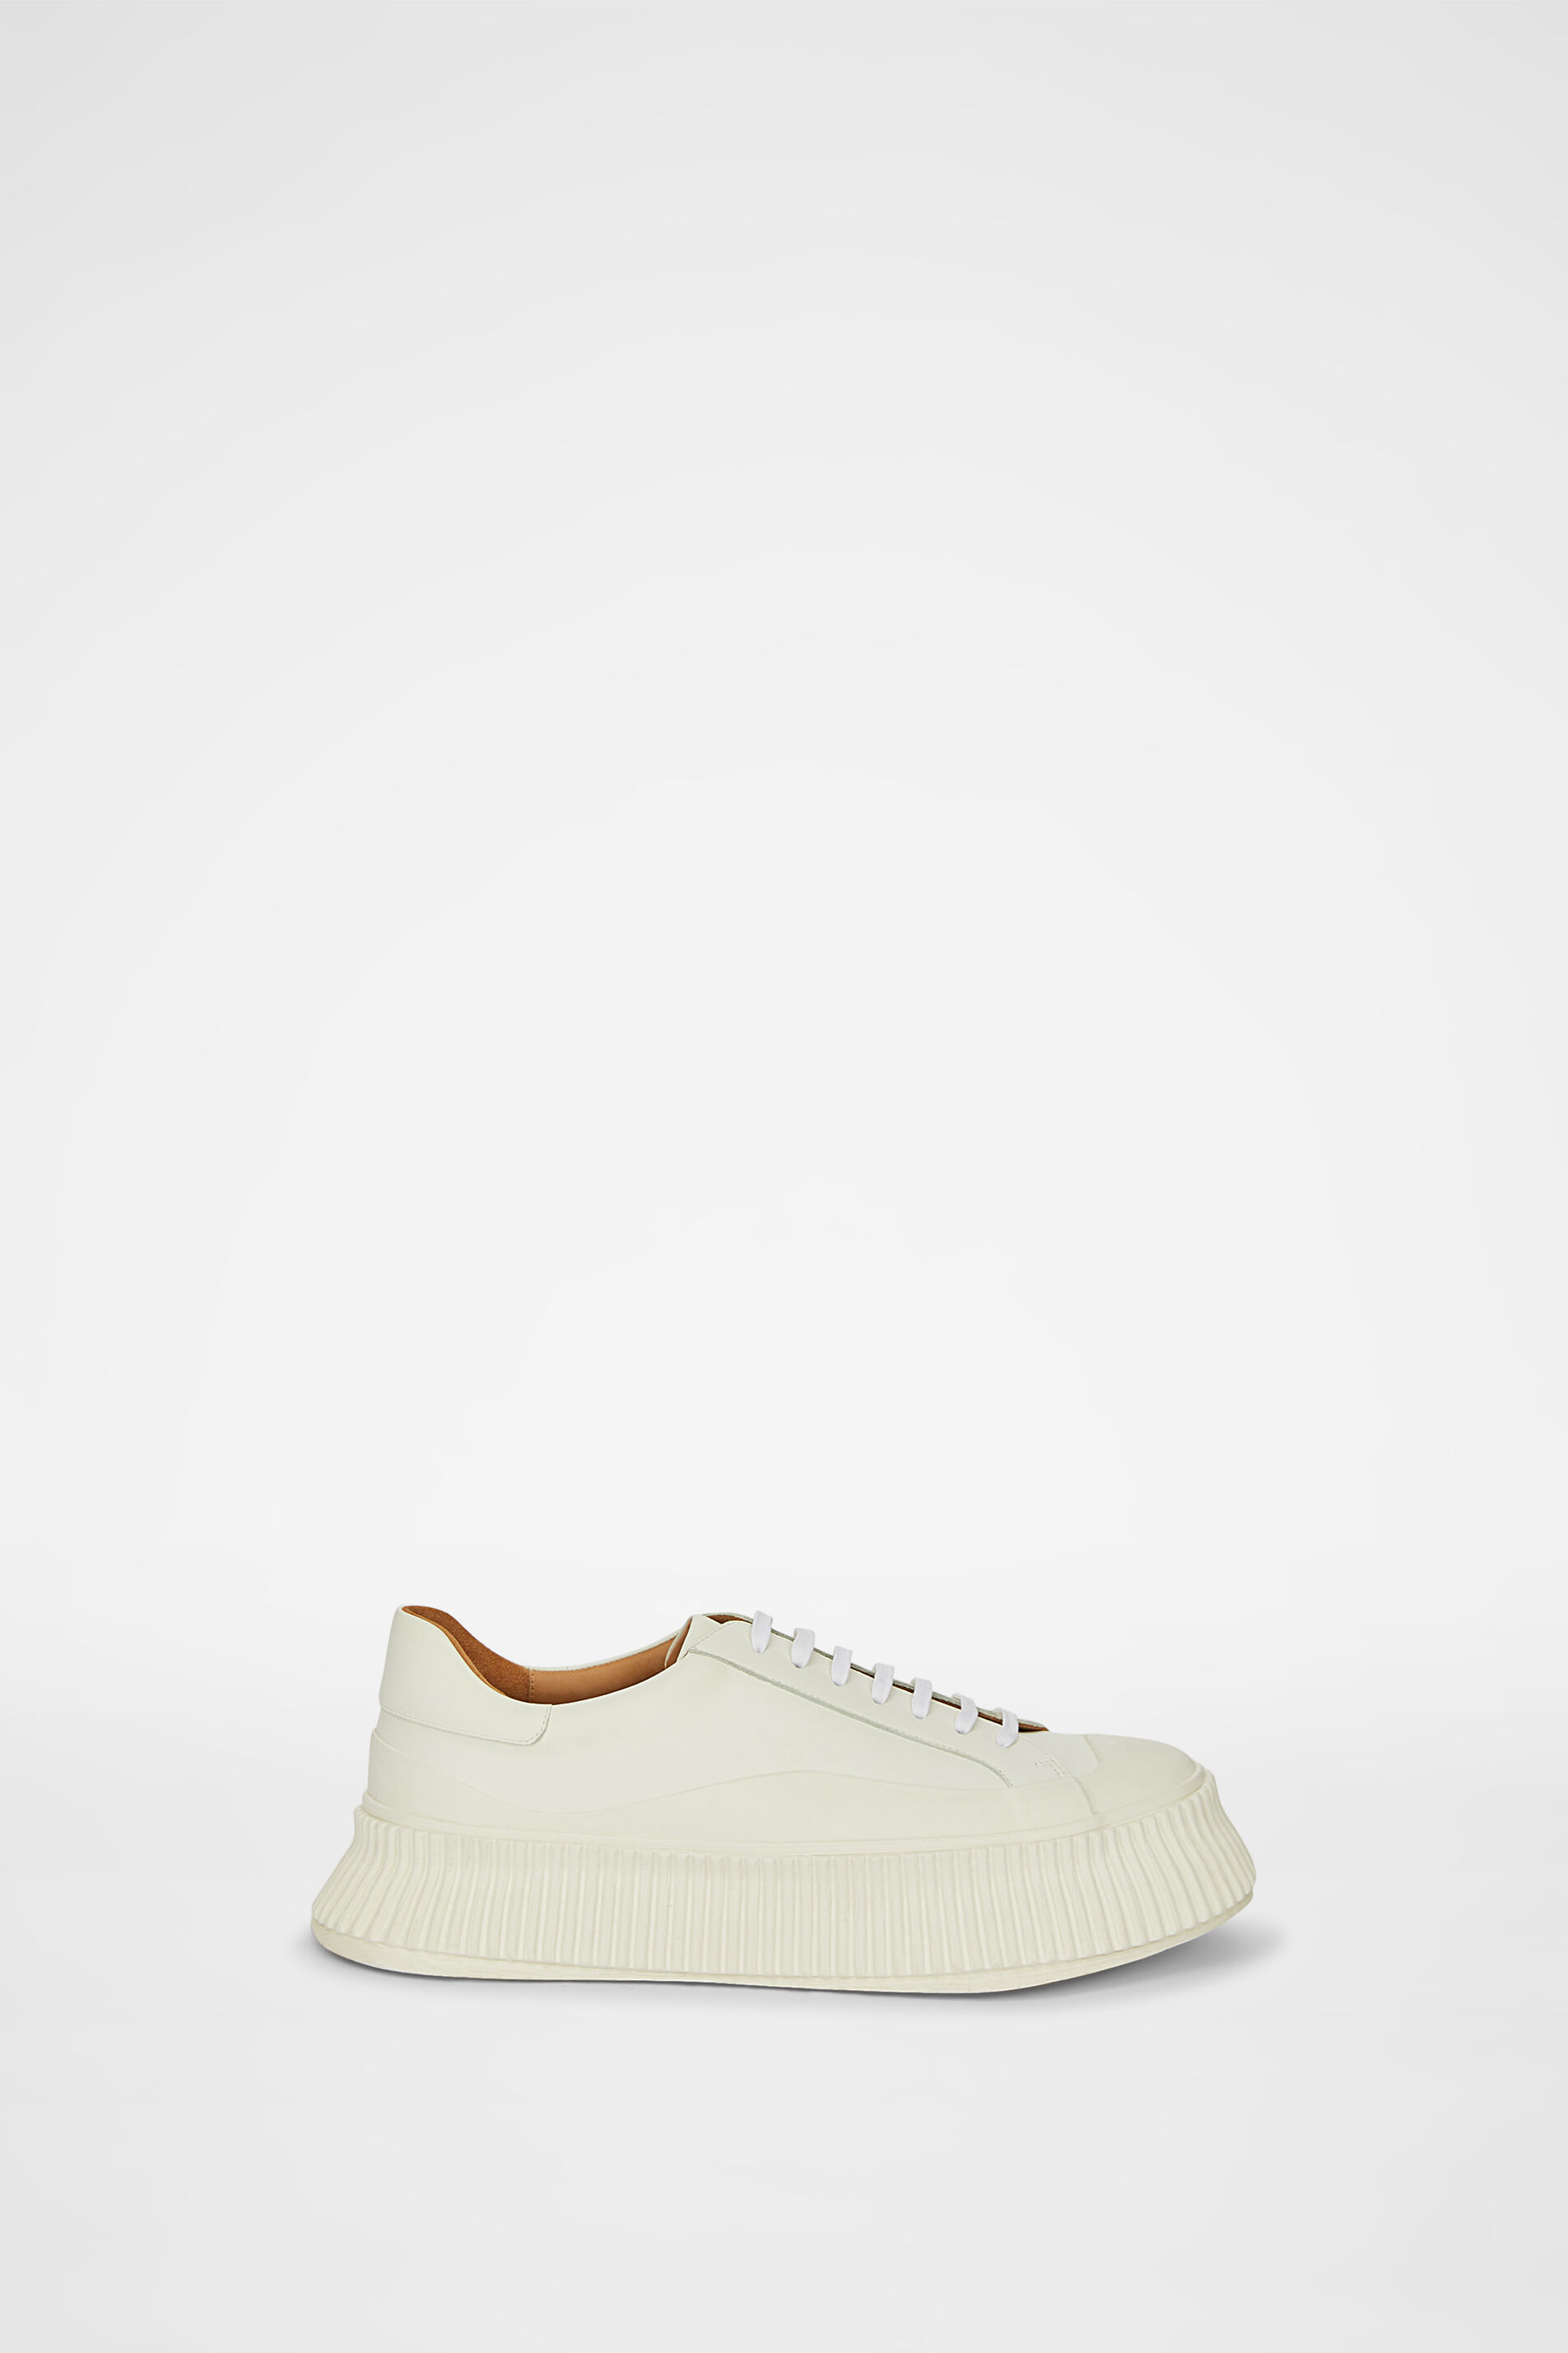 Sneakers, white, large